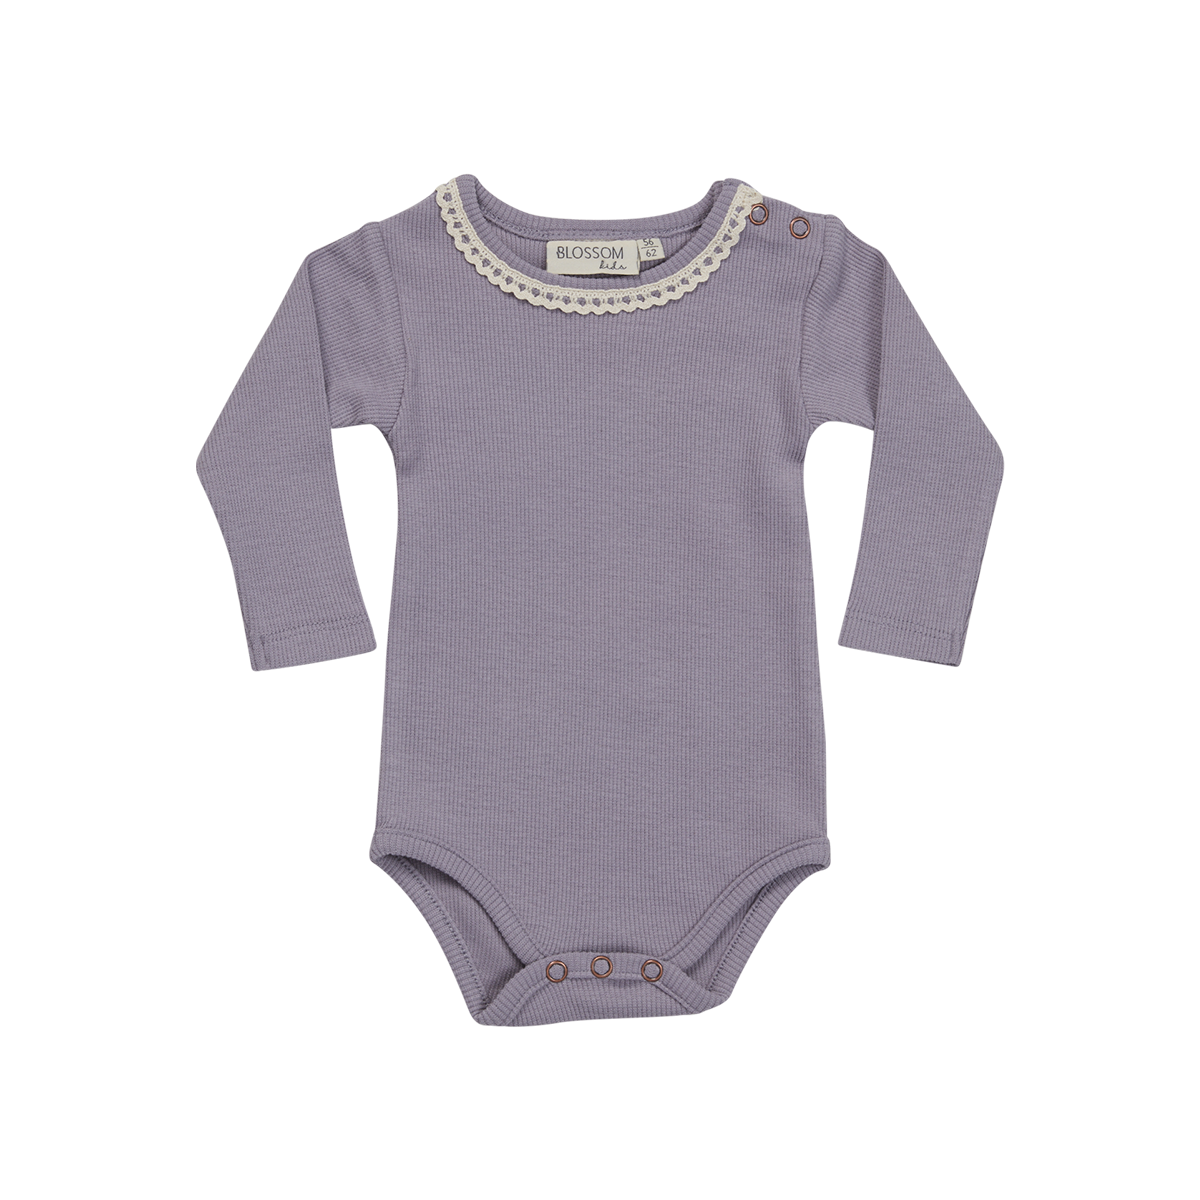 Blossom Kids Body long sleeve with lace - Lavender Blue-1